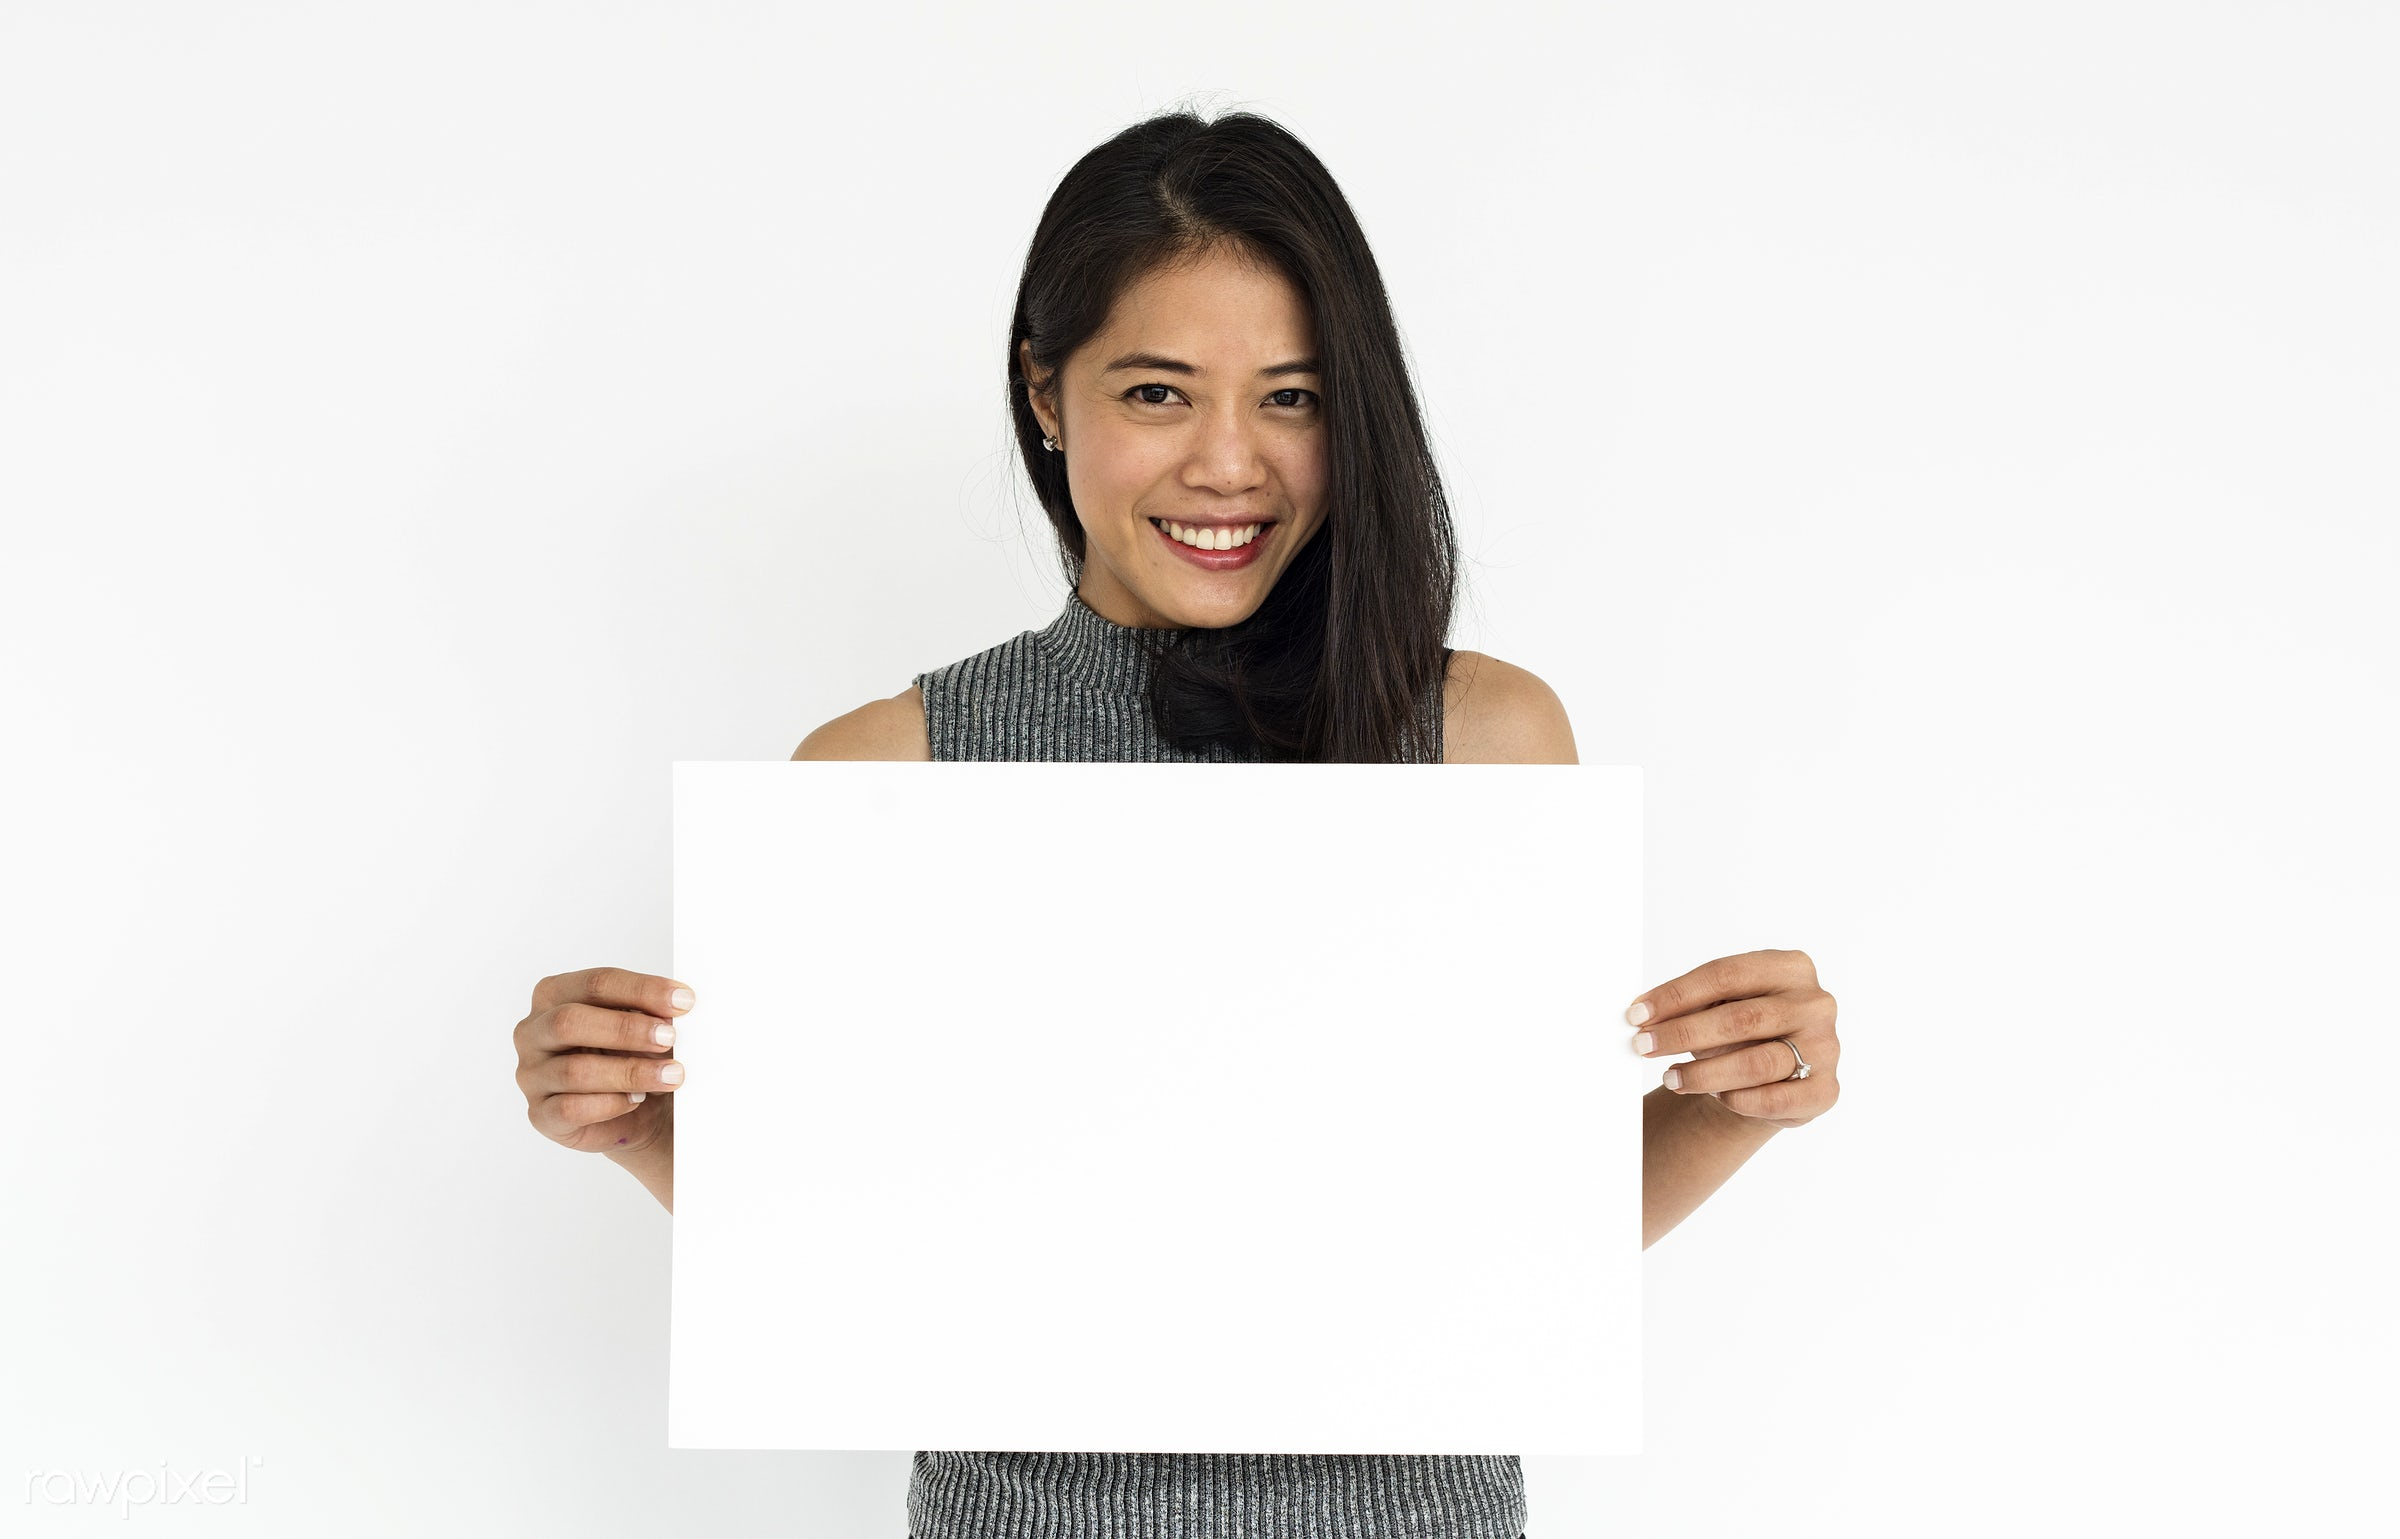 studio, expression, person, copy space, paper, isolated on white, advertising, asian, woman, empty, showing, cheerful,...